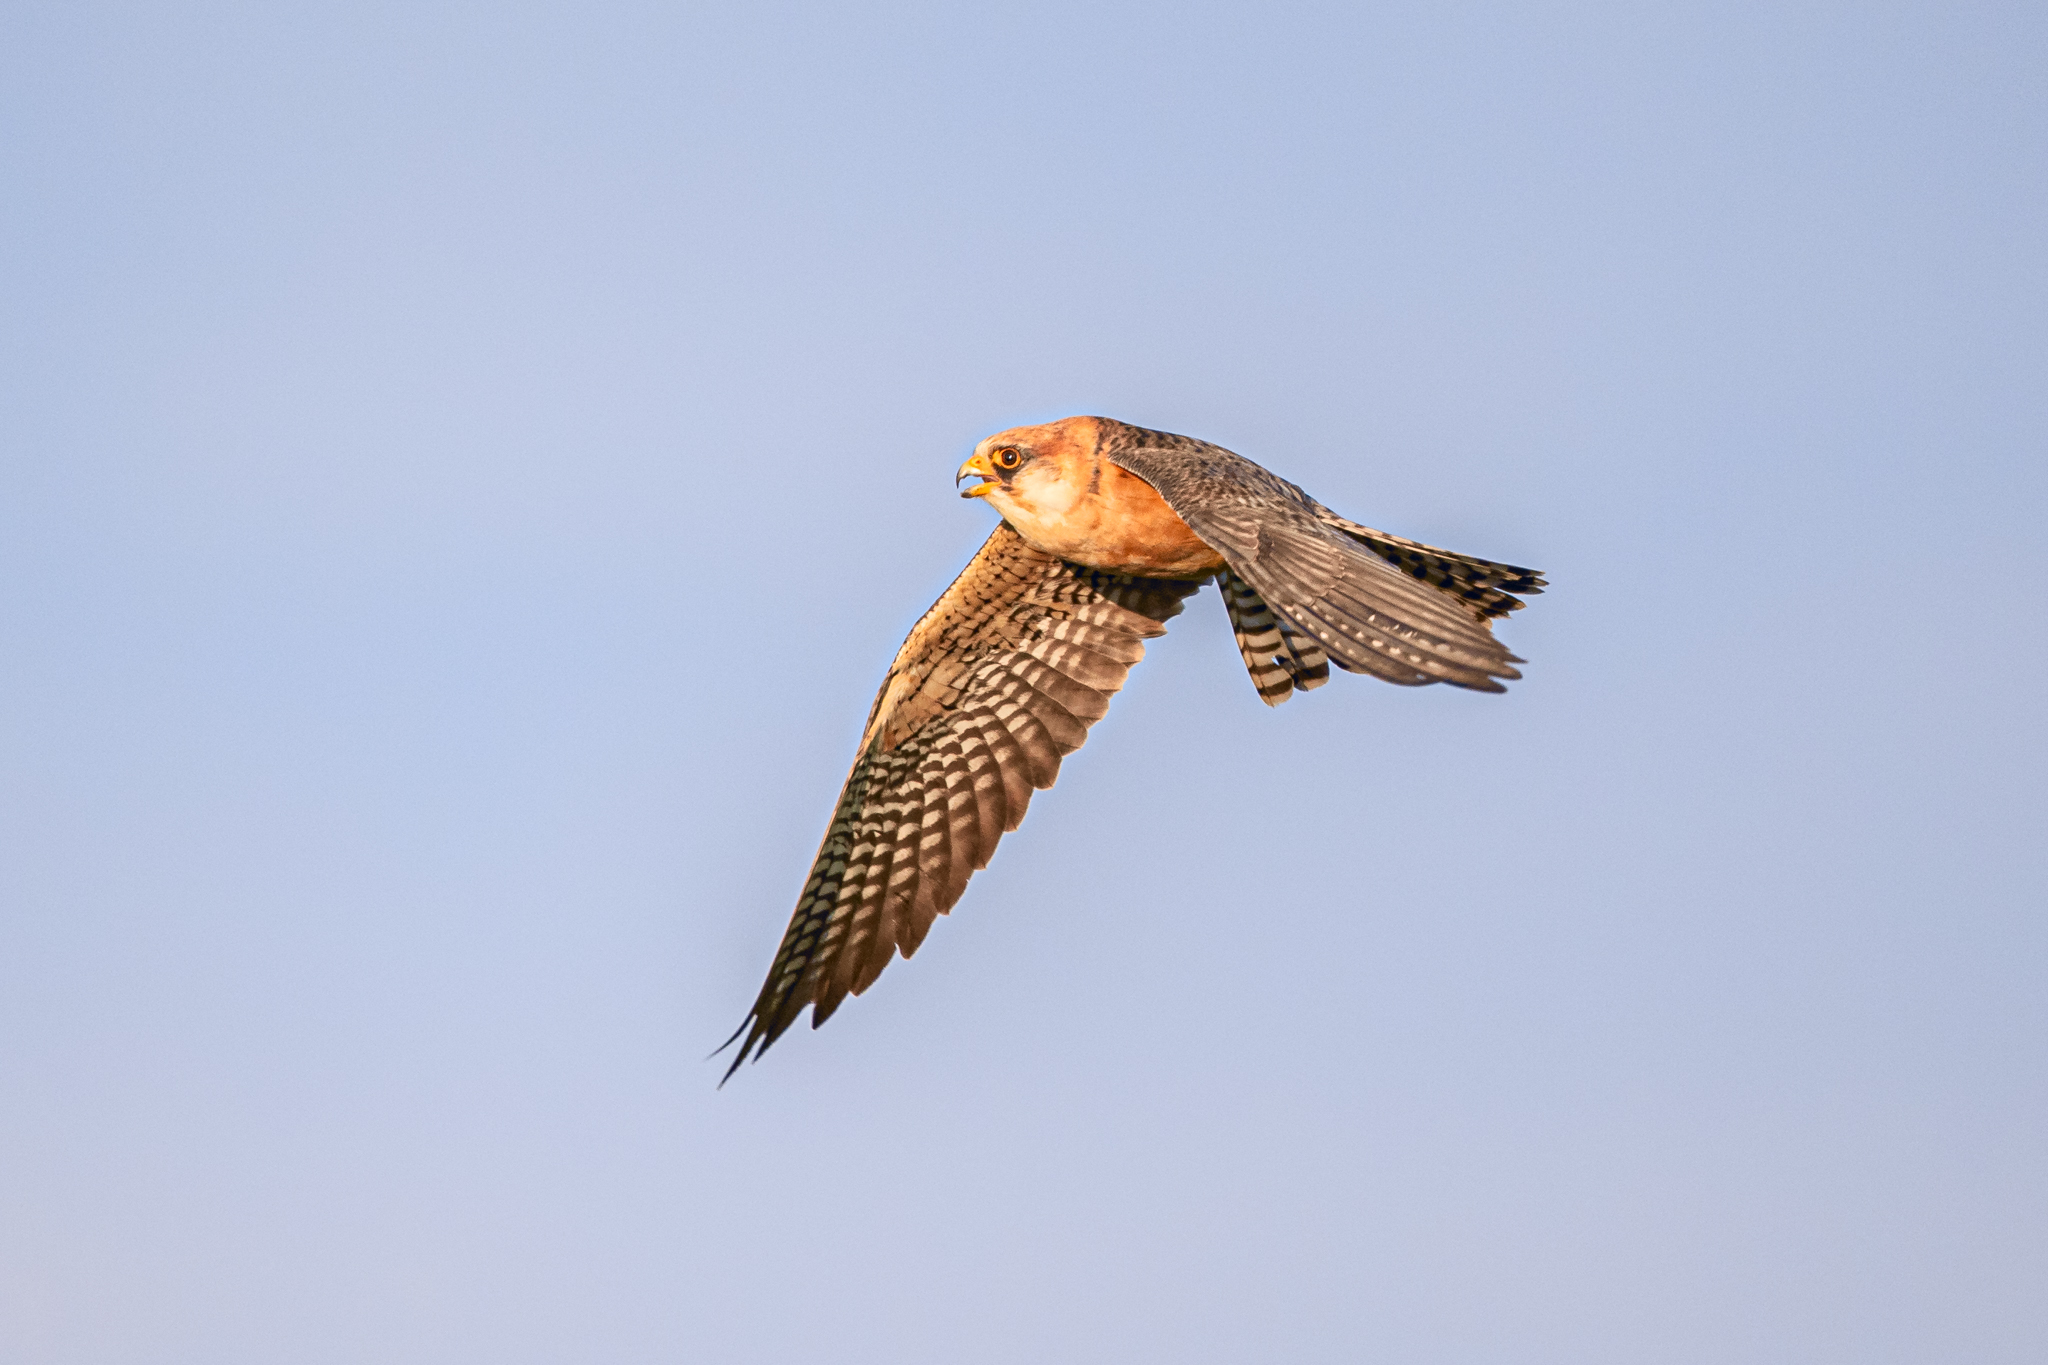 red-footed falcon flying lab color _A8I4882.jpg